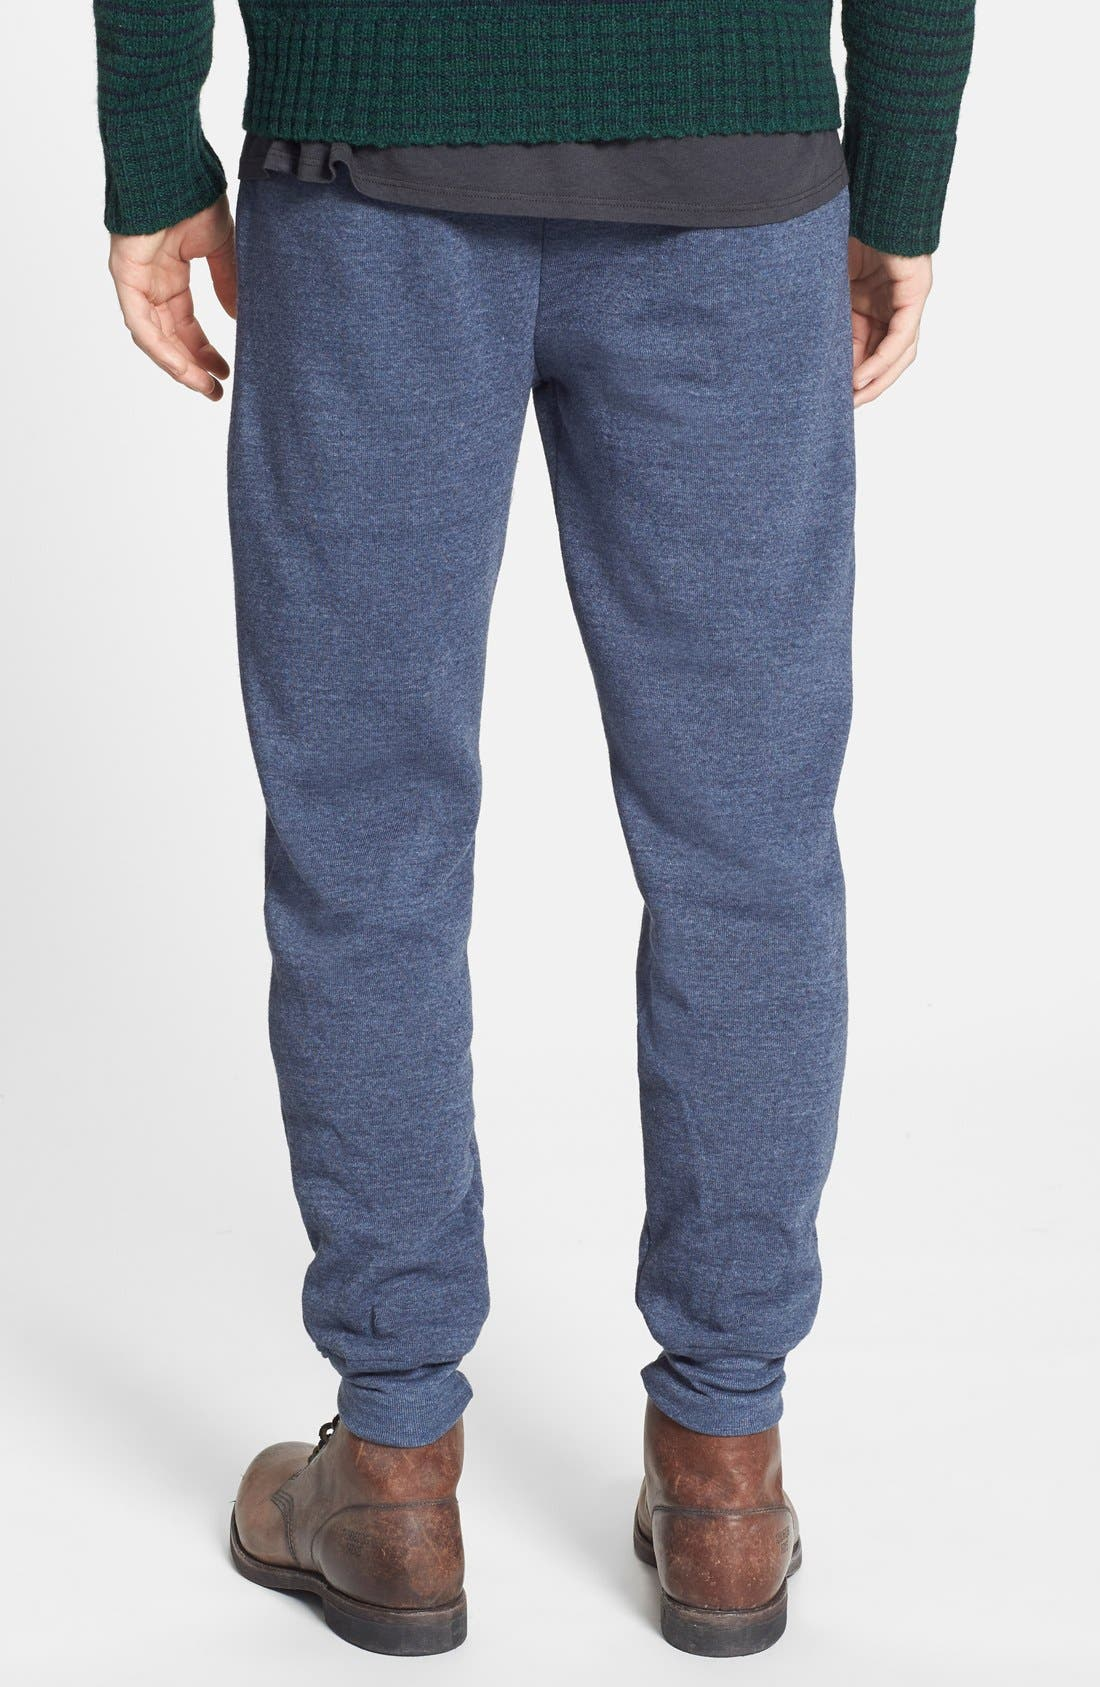 'Dodgeball' Eco Fleece Sweatpants,                             Alternate thumbnail 28, color,